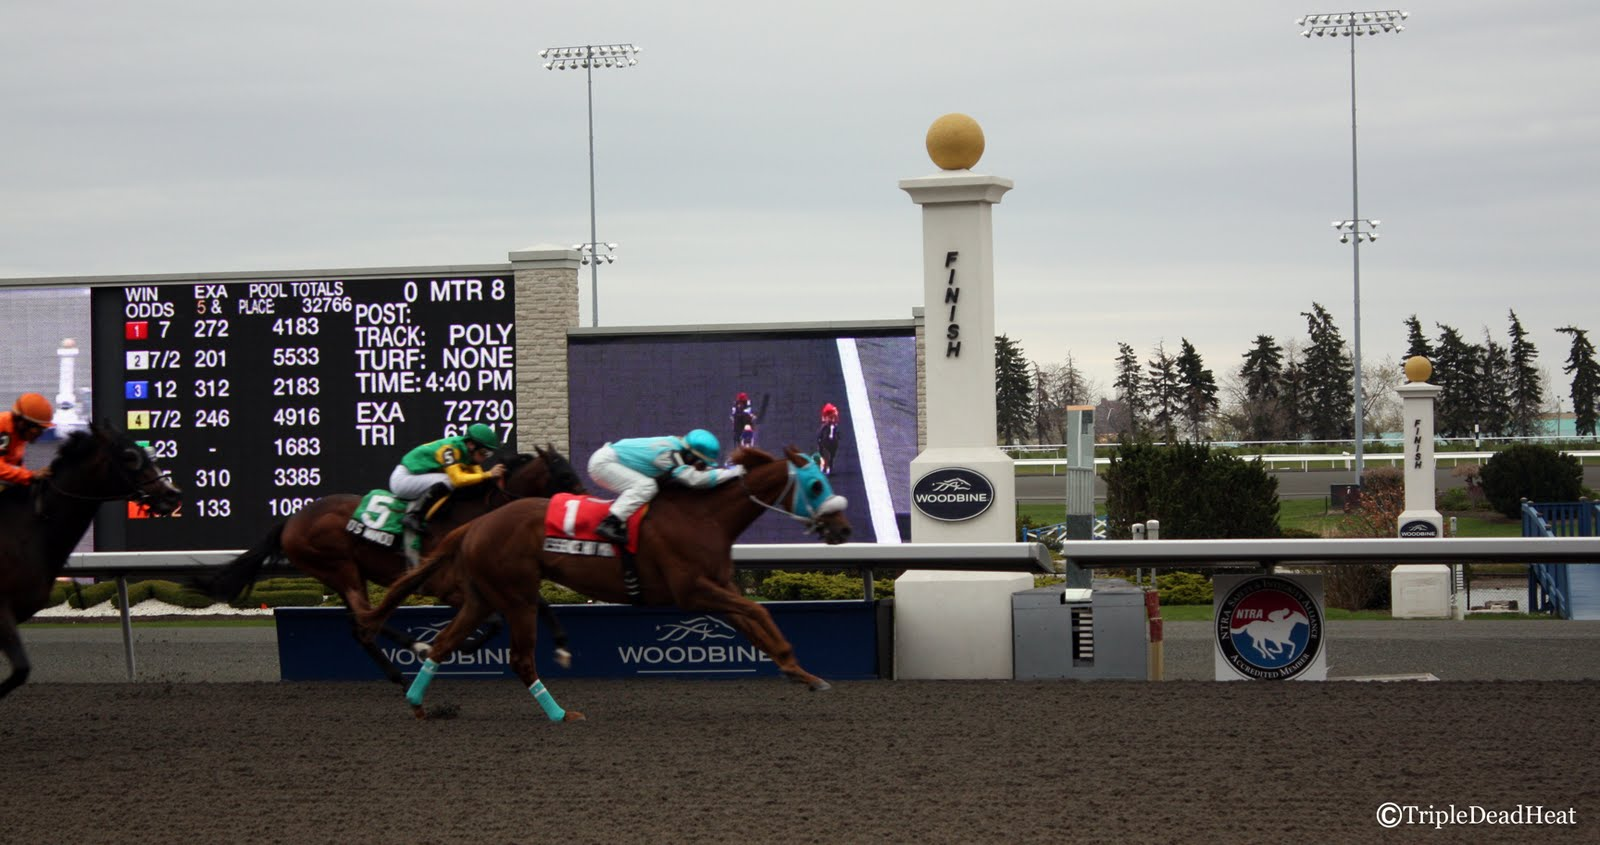 pros and cons of horse racing essay Now that mayor john tory is talking with canadian olympic committee president marcel aubut about a toronto bid for the 2024 games, it's a good time to examine the pros and cons.